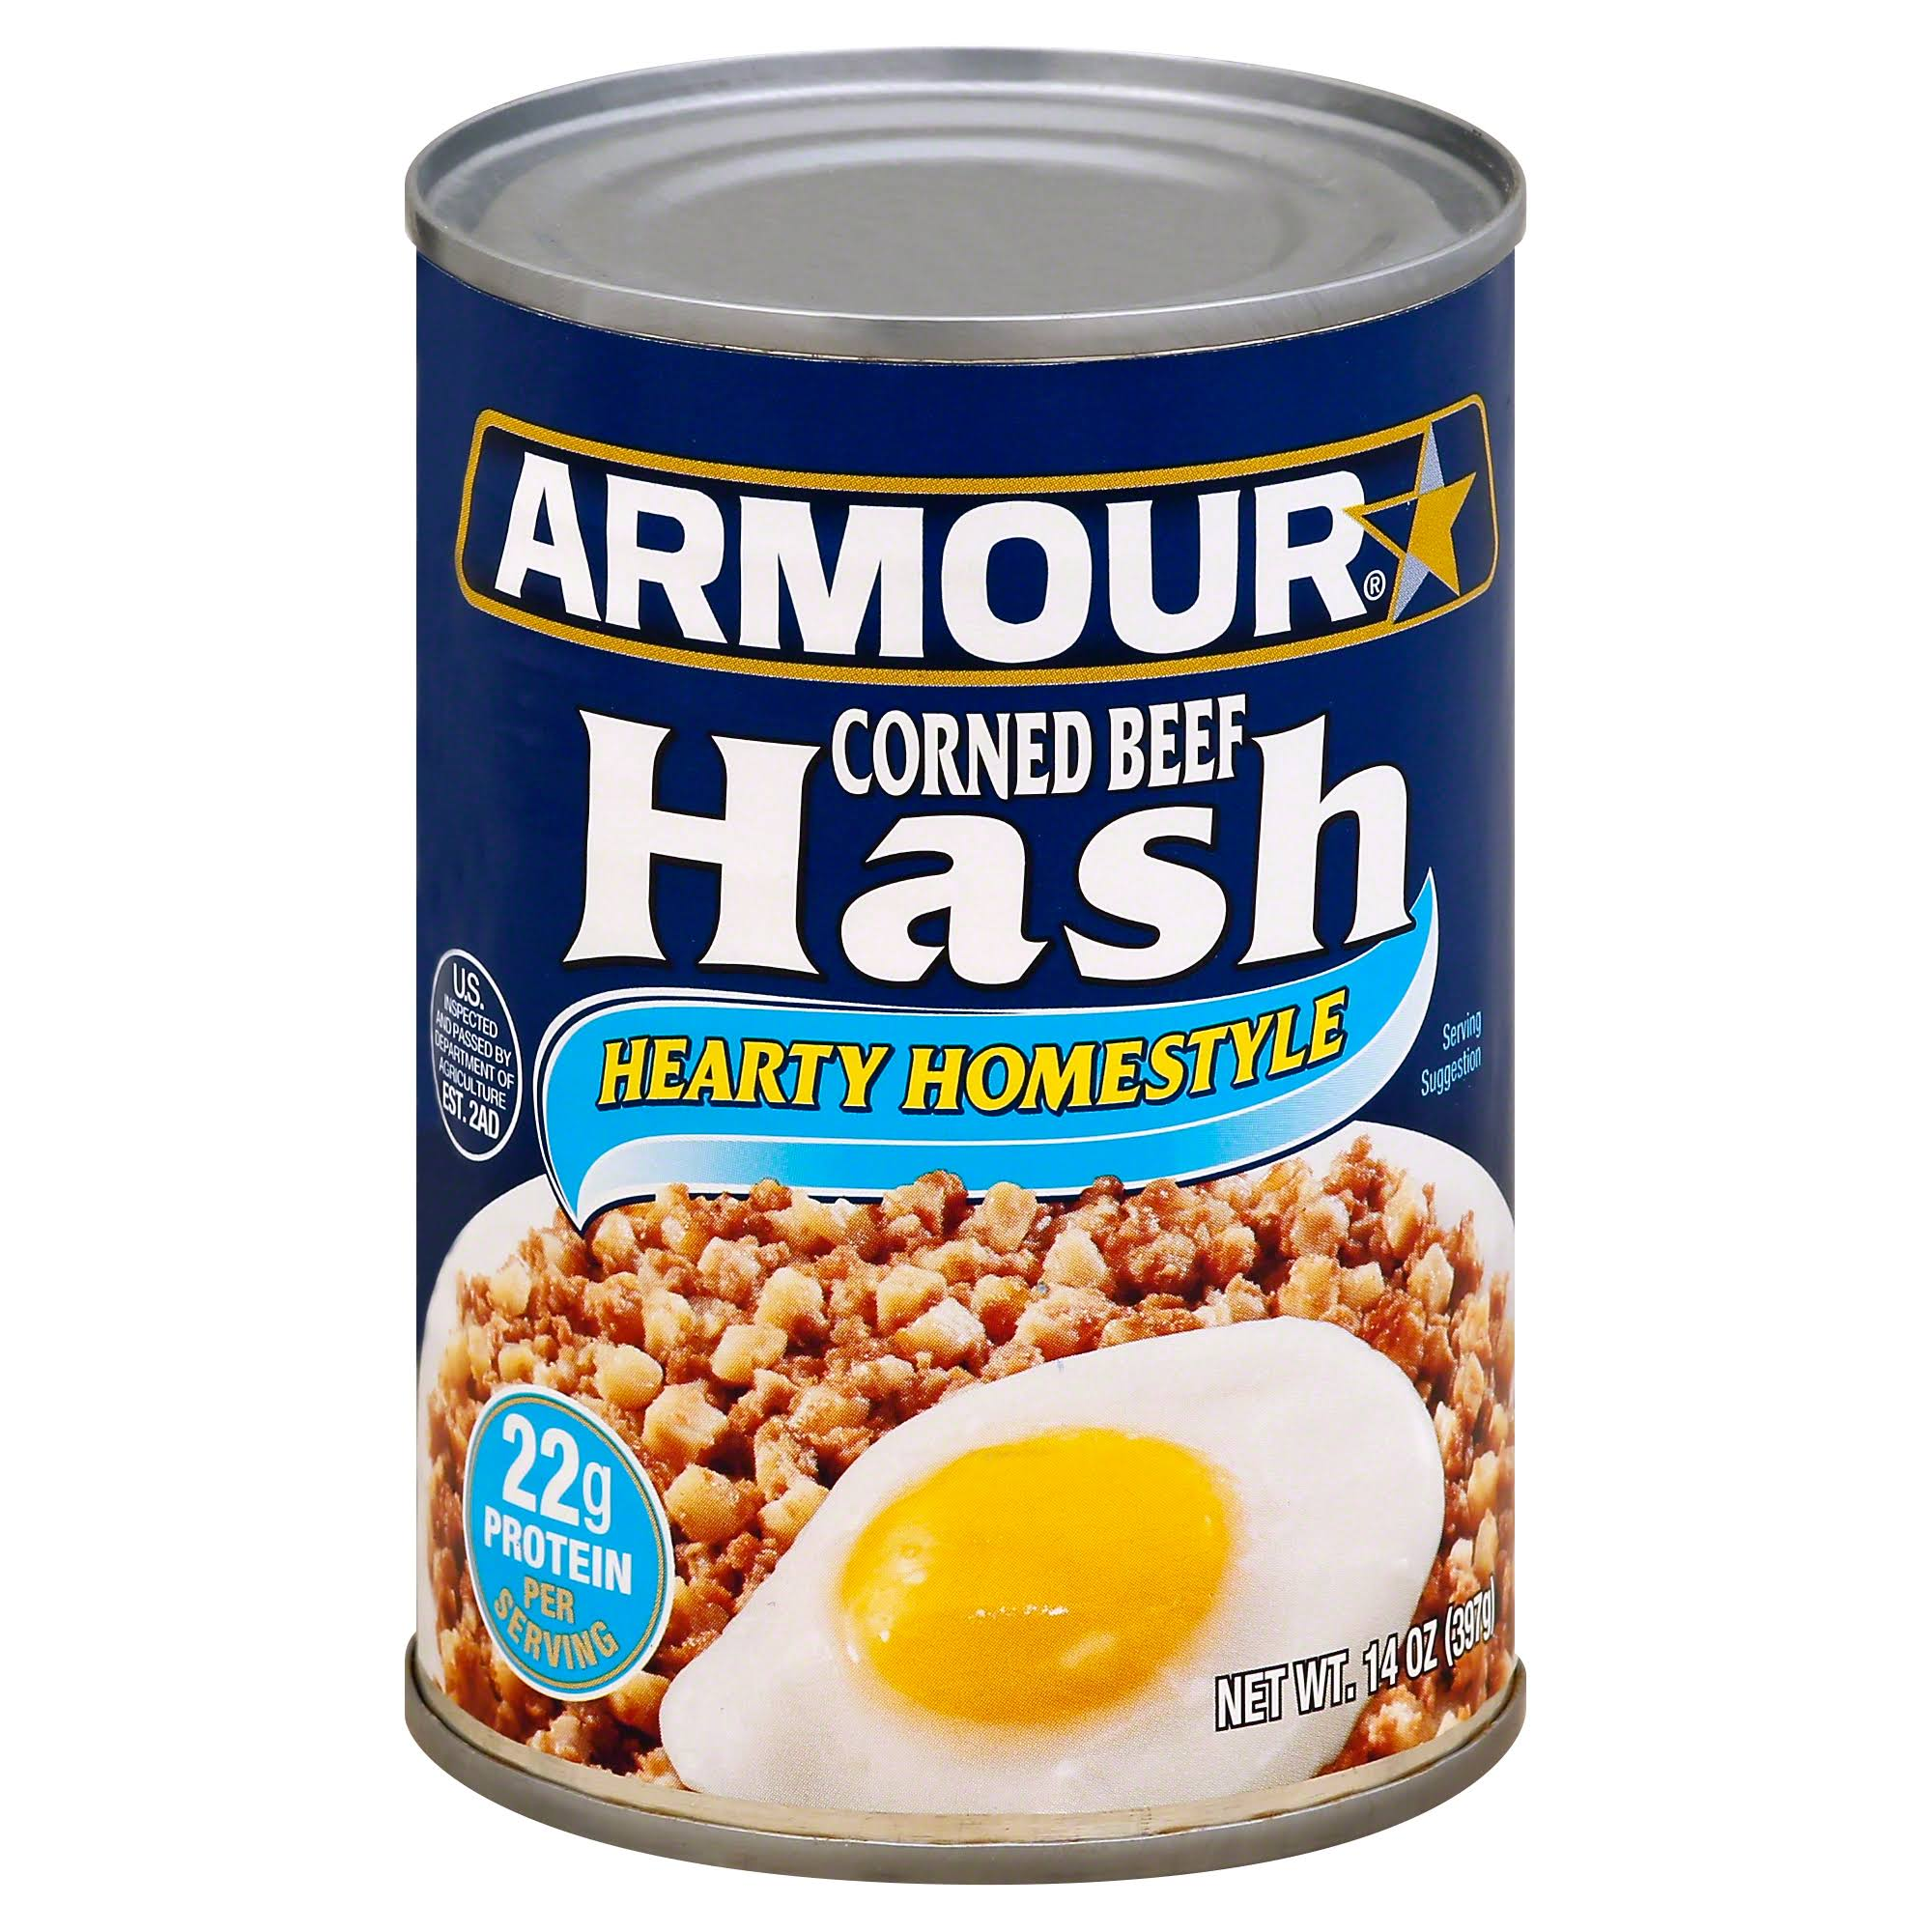 Armour Hearty Homestyle Corned Beef Hash - 14oz